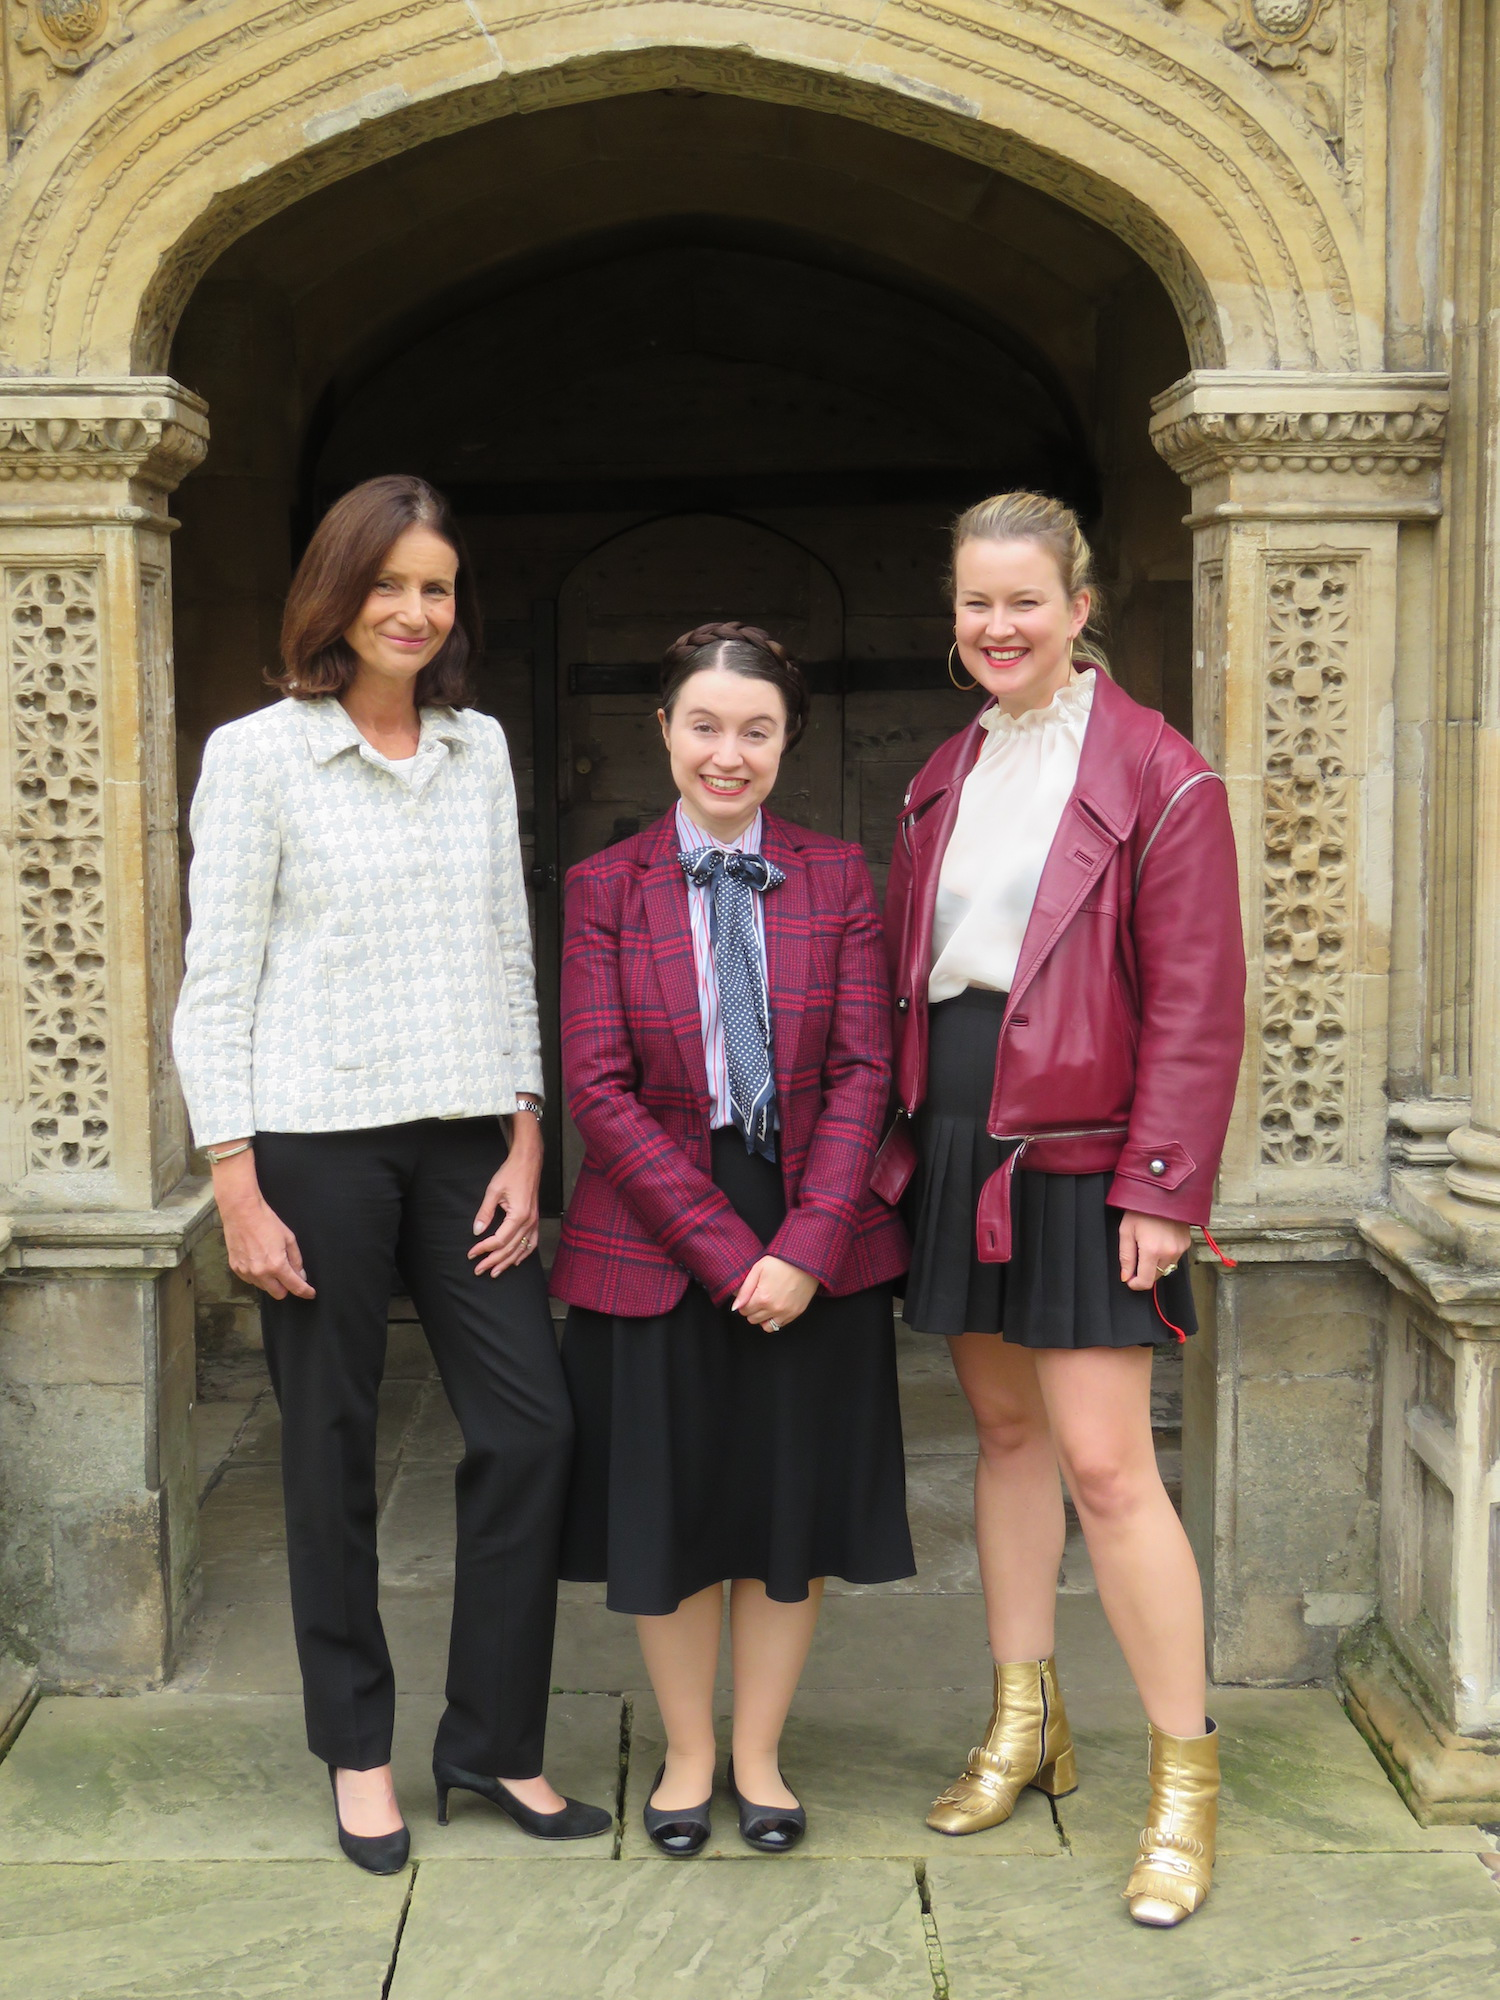 Cbi Chief And Fashion Designer Inspire At Women In Economics Day Gonville Caius